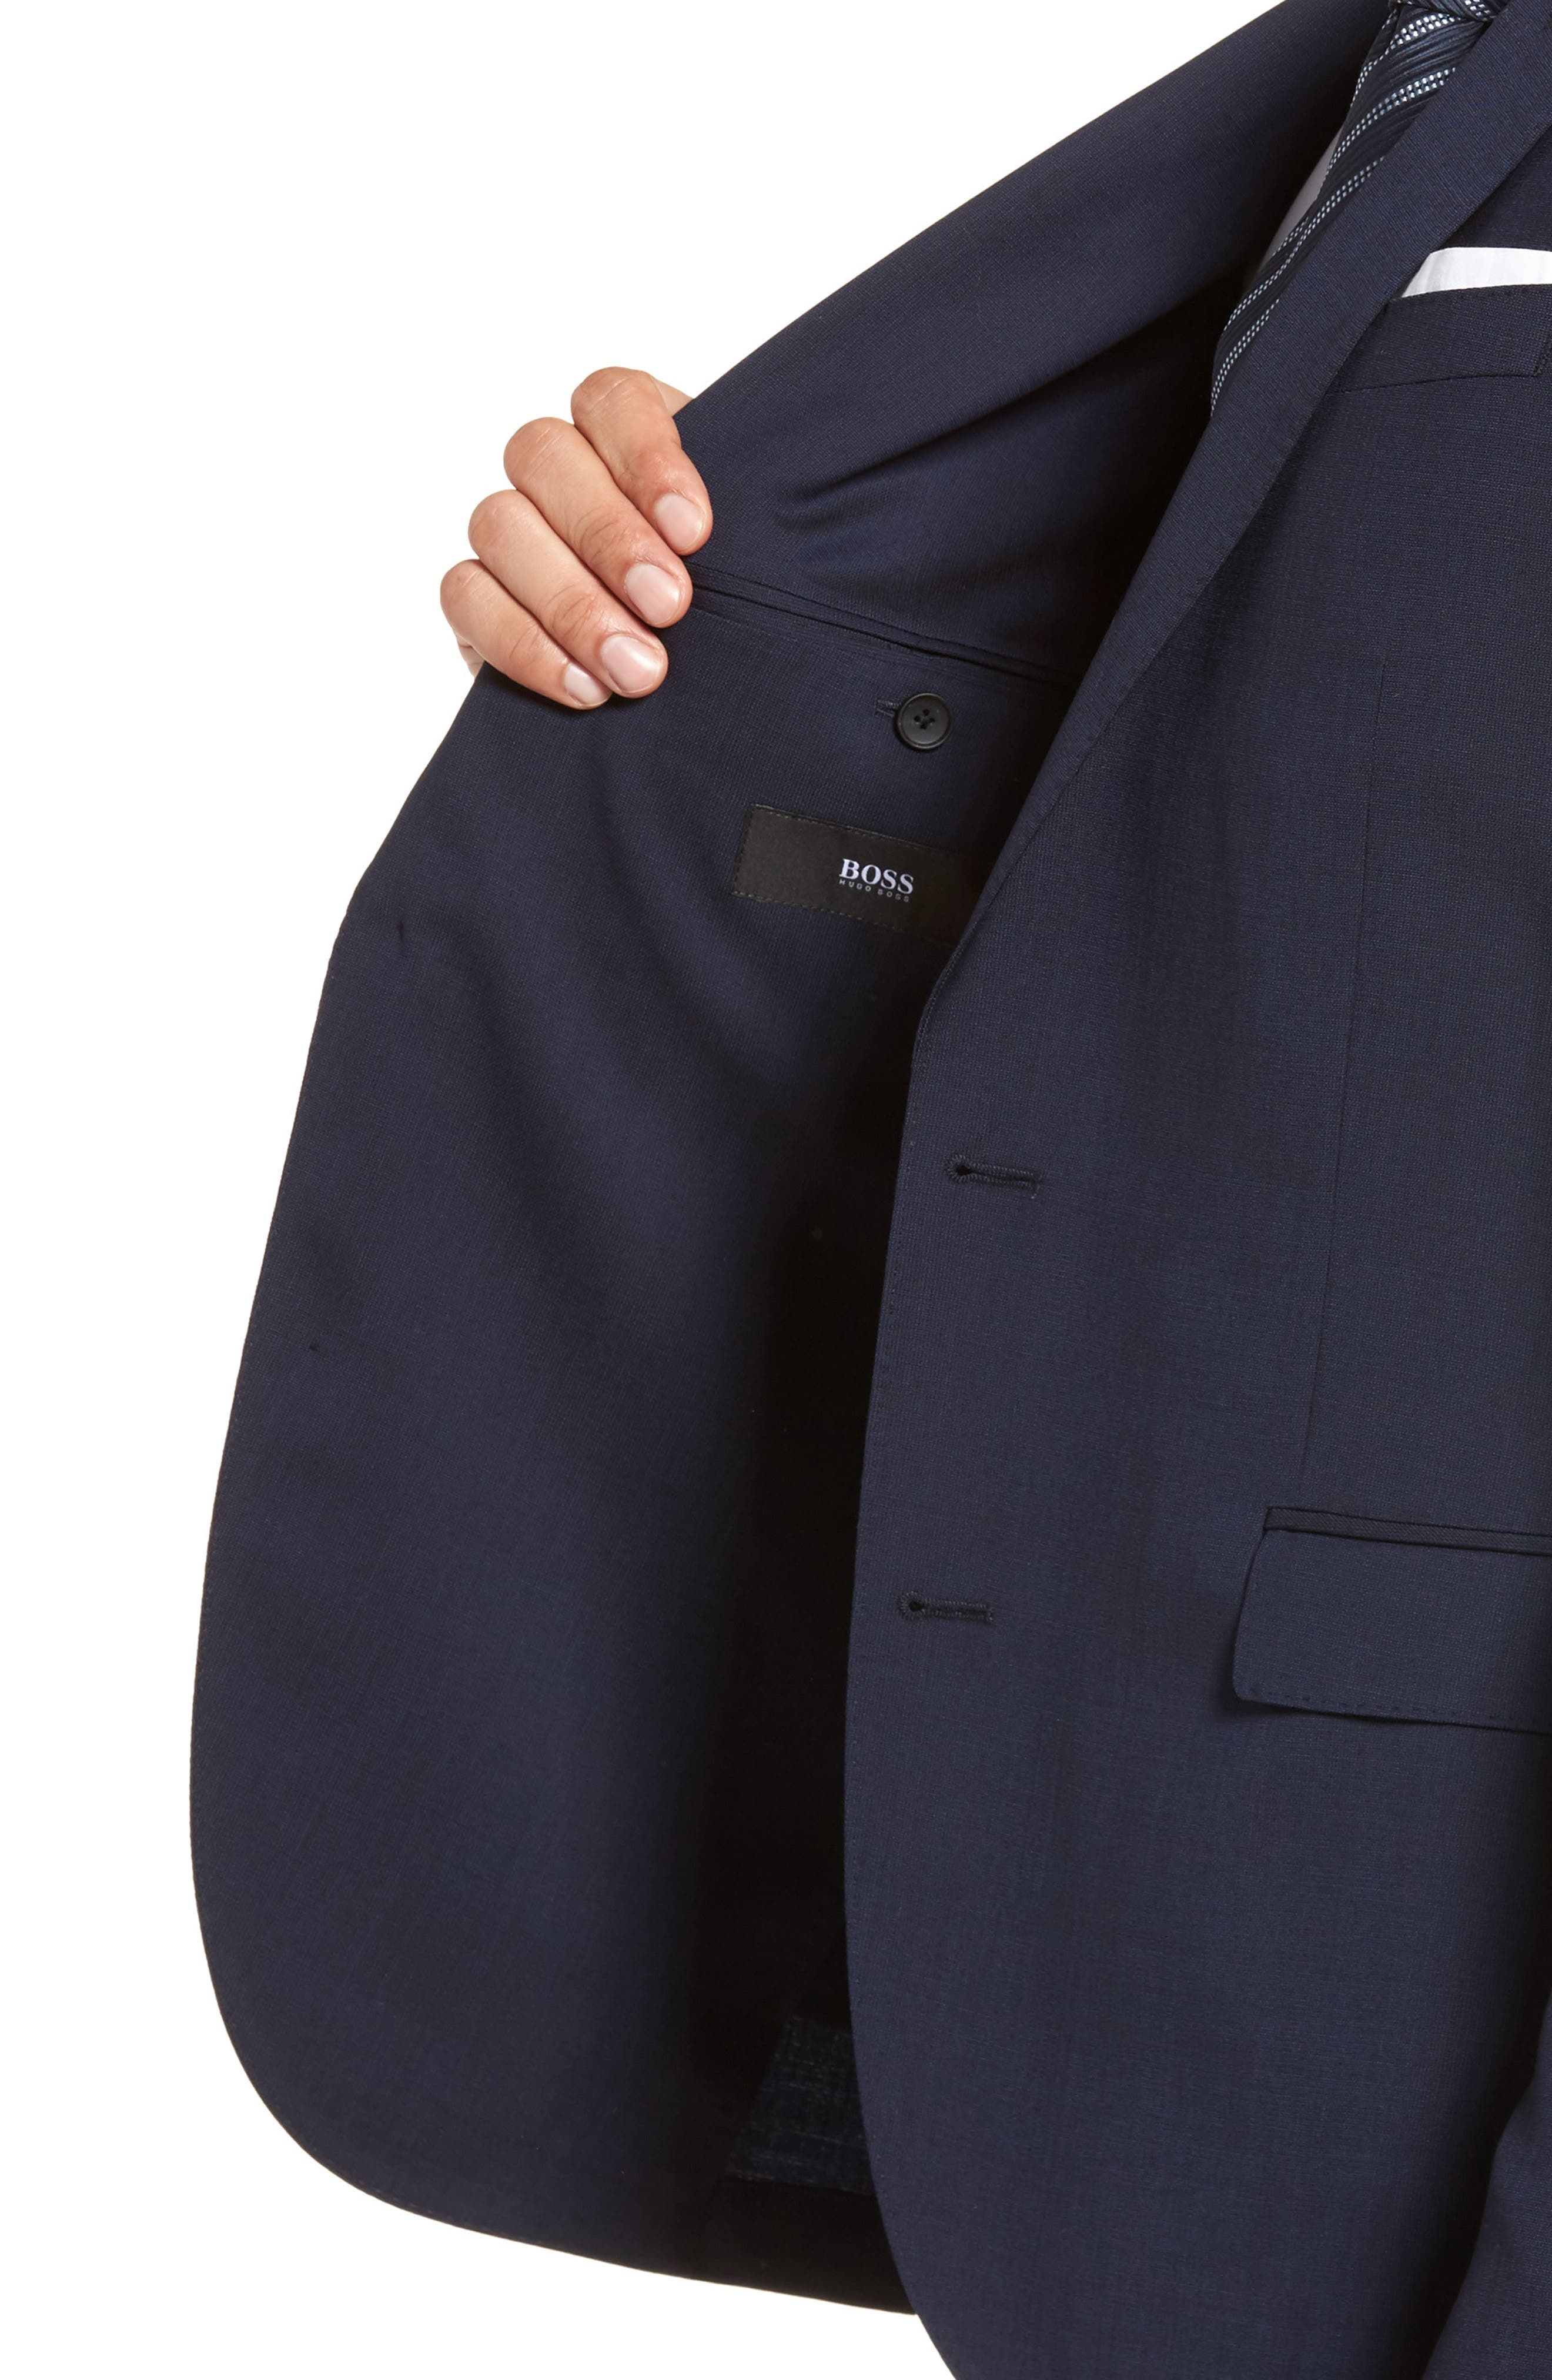 Nylen/Perry Trim Fit Solid Wool Suit,                             Alternate thumbnail 4, color,                             Navy